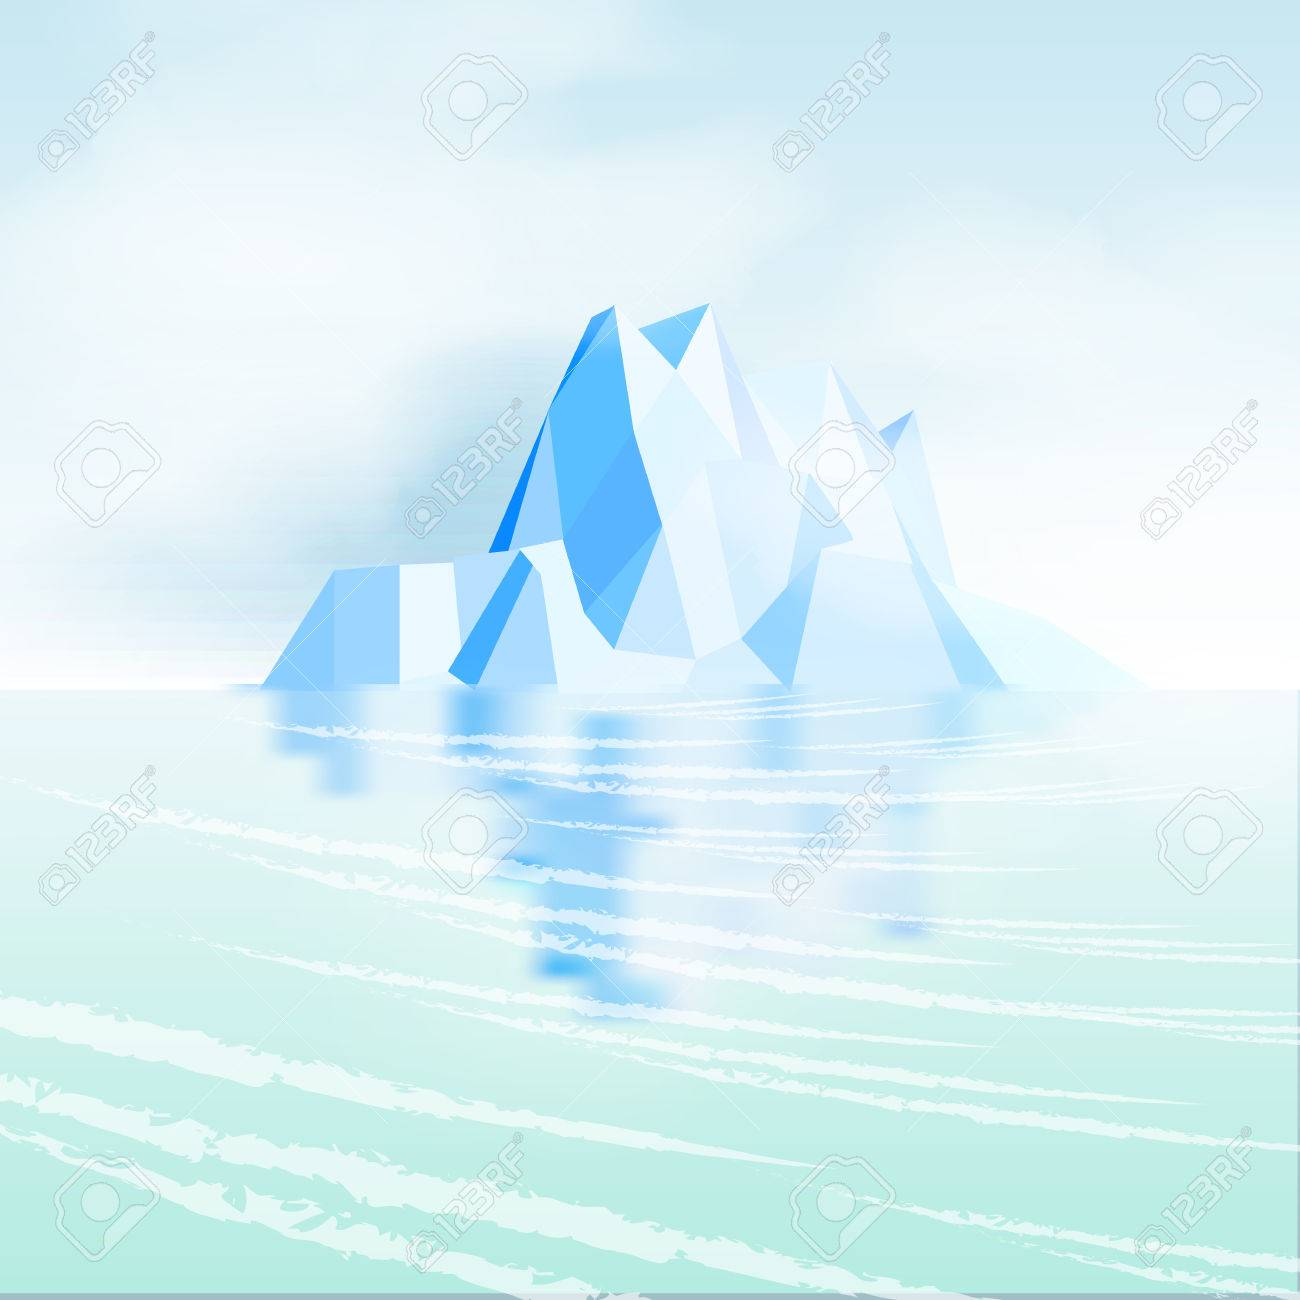 Iceberg with Reflection - Vector Illustration - 32346231